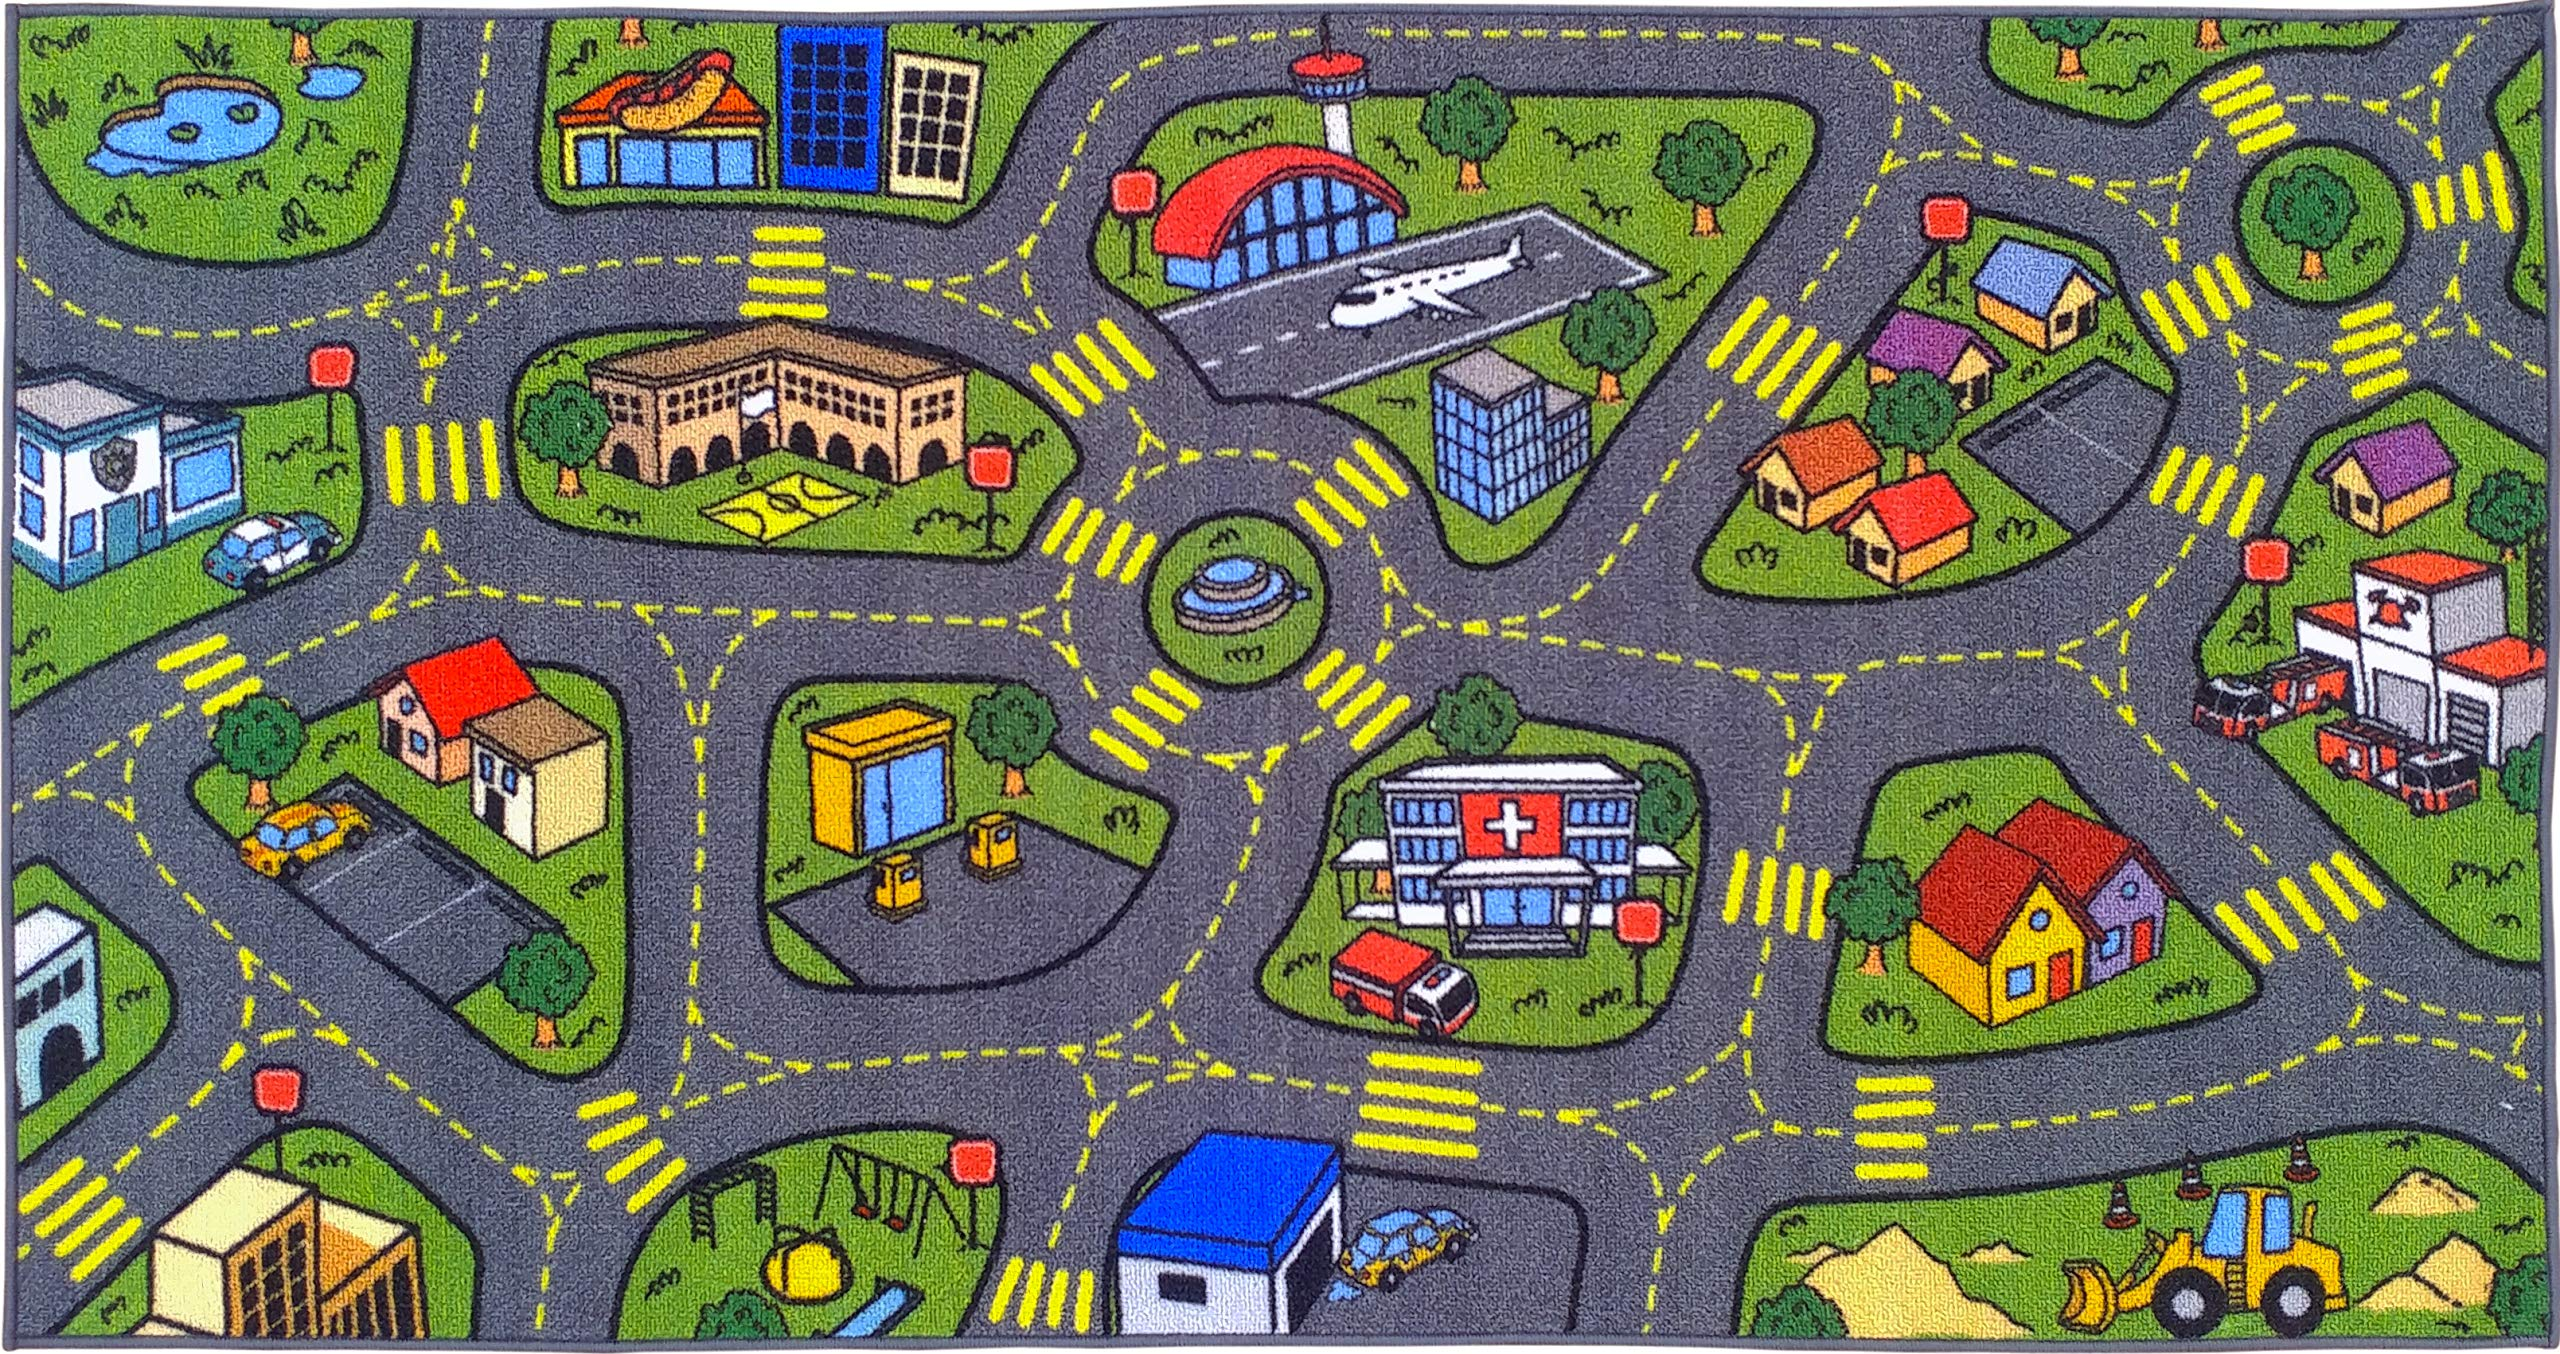 Jungtier KCP010032-2x5 Fun Time Retro City Traffic Car Road Map Educational Learning & Game Area Rug Carpet for Kids and Children Bedrooms and Playroom, 2' 7'' x 5' 0'', Multi by Jungtier